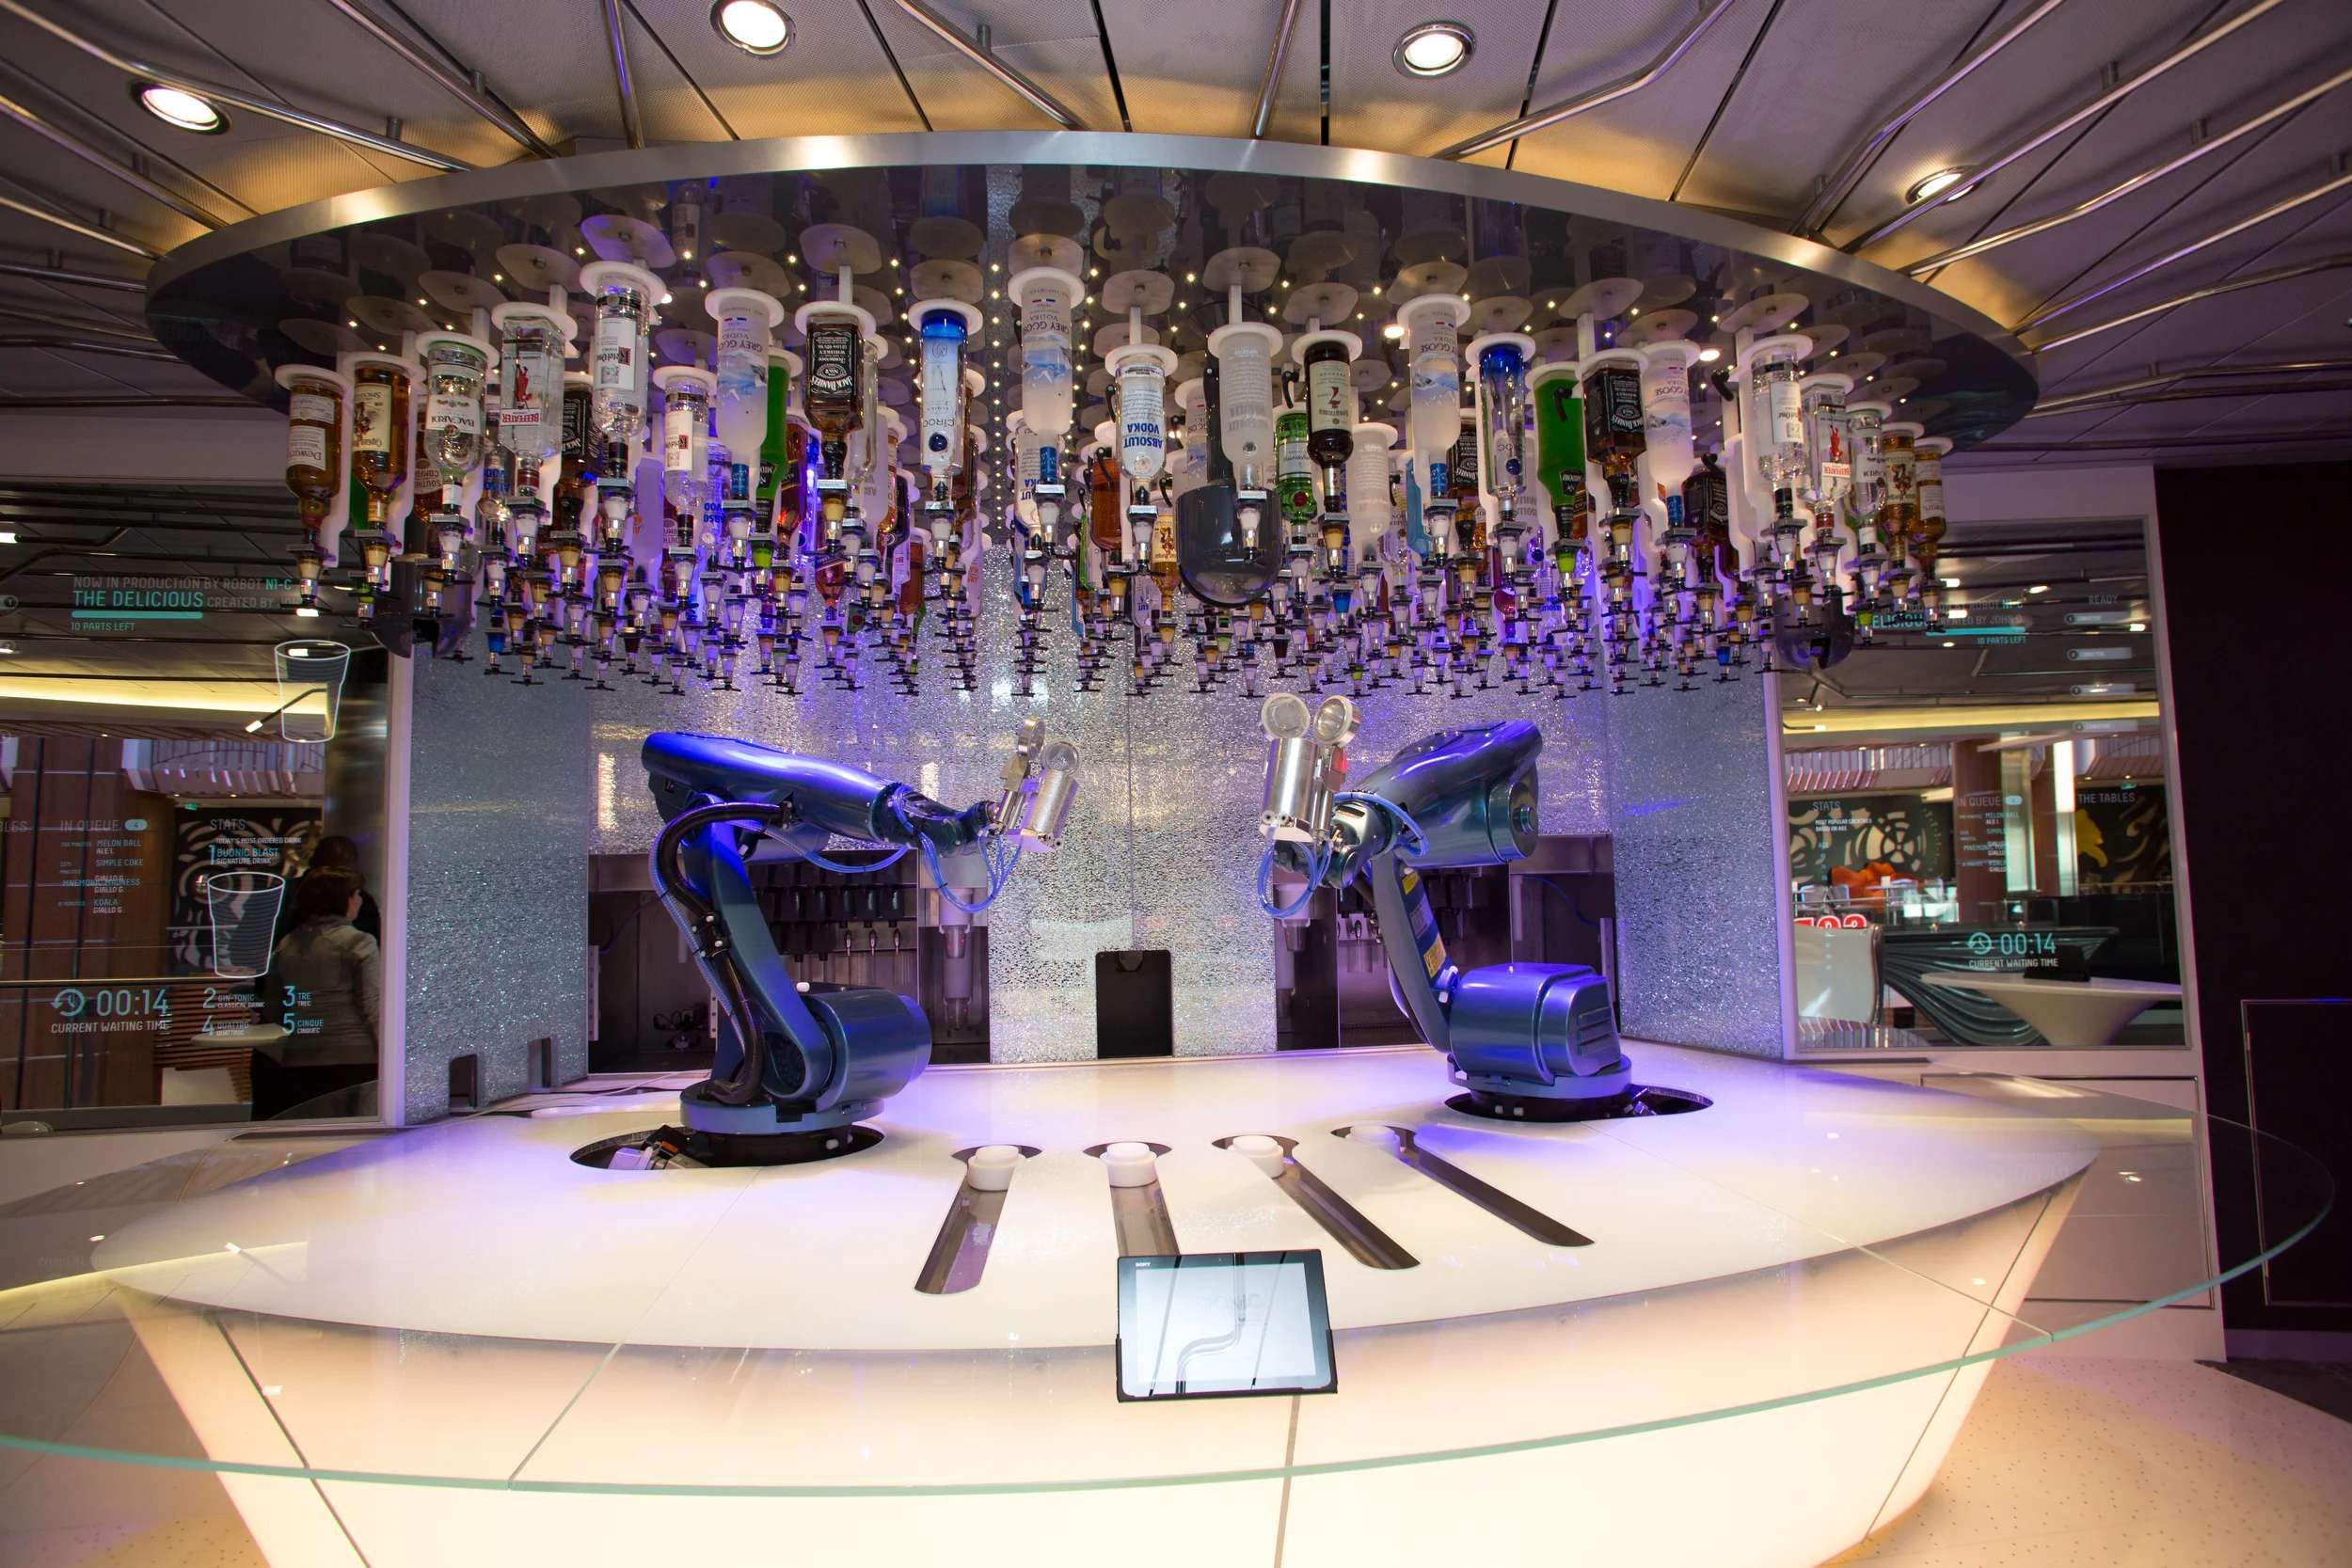 The Bionic Bar on Royal Caribbean's Quantum of the Seas. (Photo courtesy of Royal Caribbean)